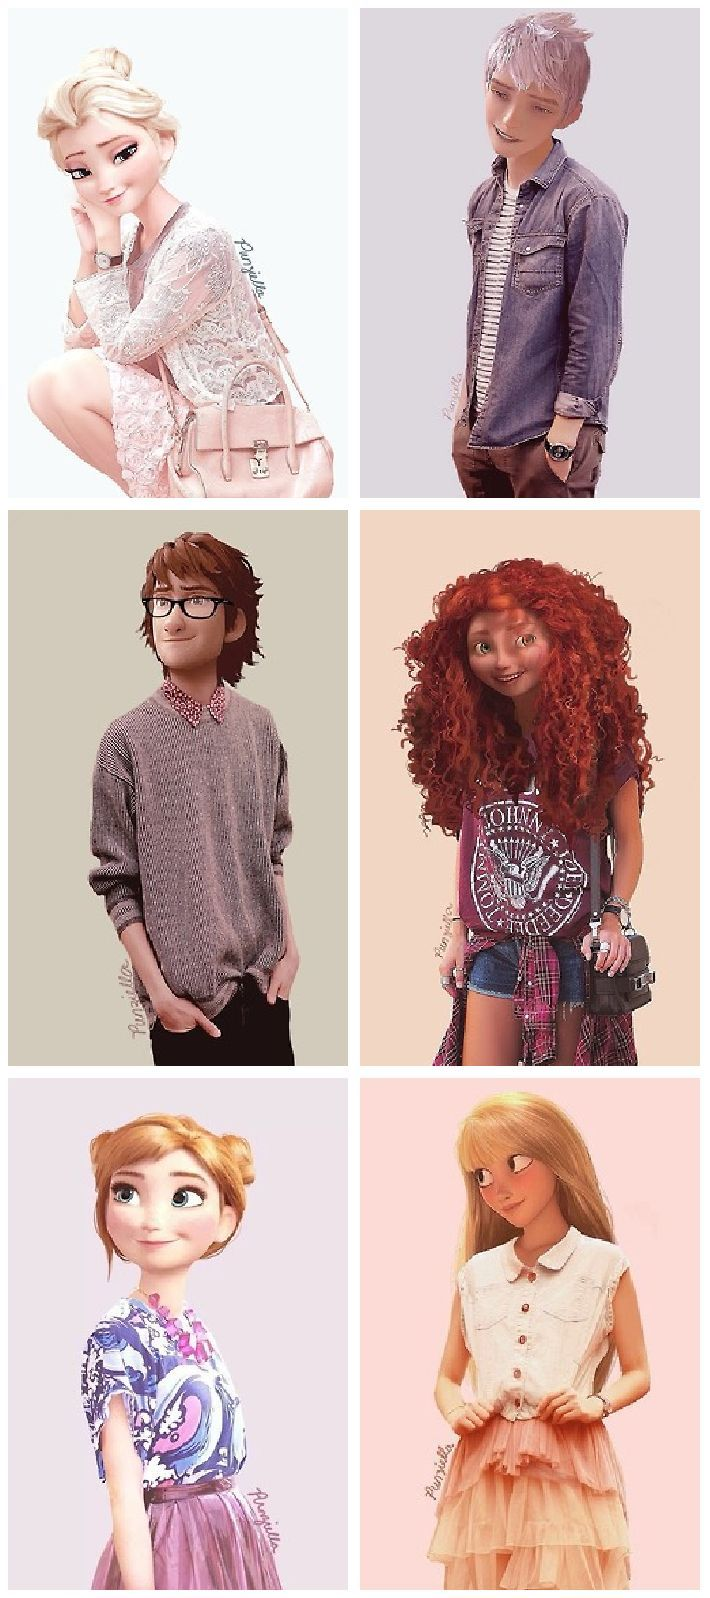 I like: Anna, Elsa, Merida, and hiccup. But I hate Jack Frost!!!